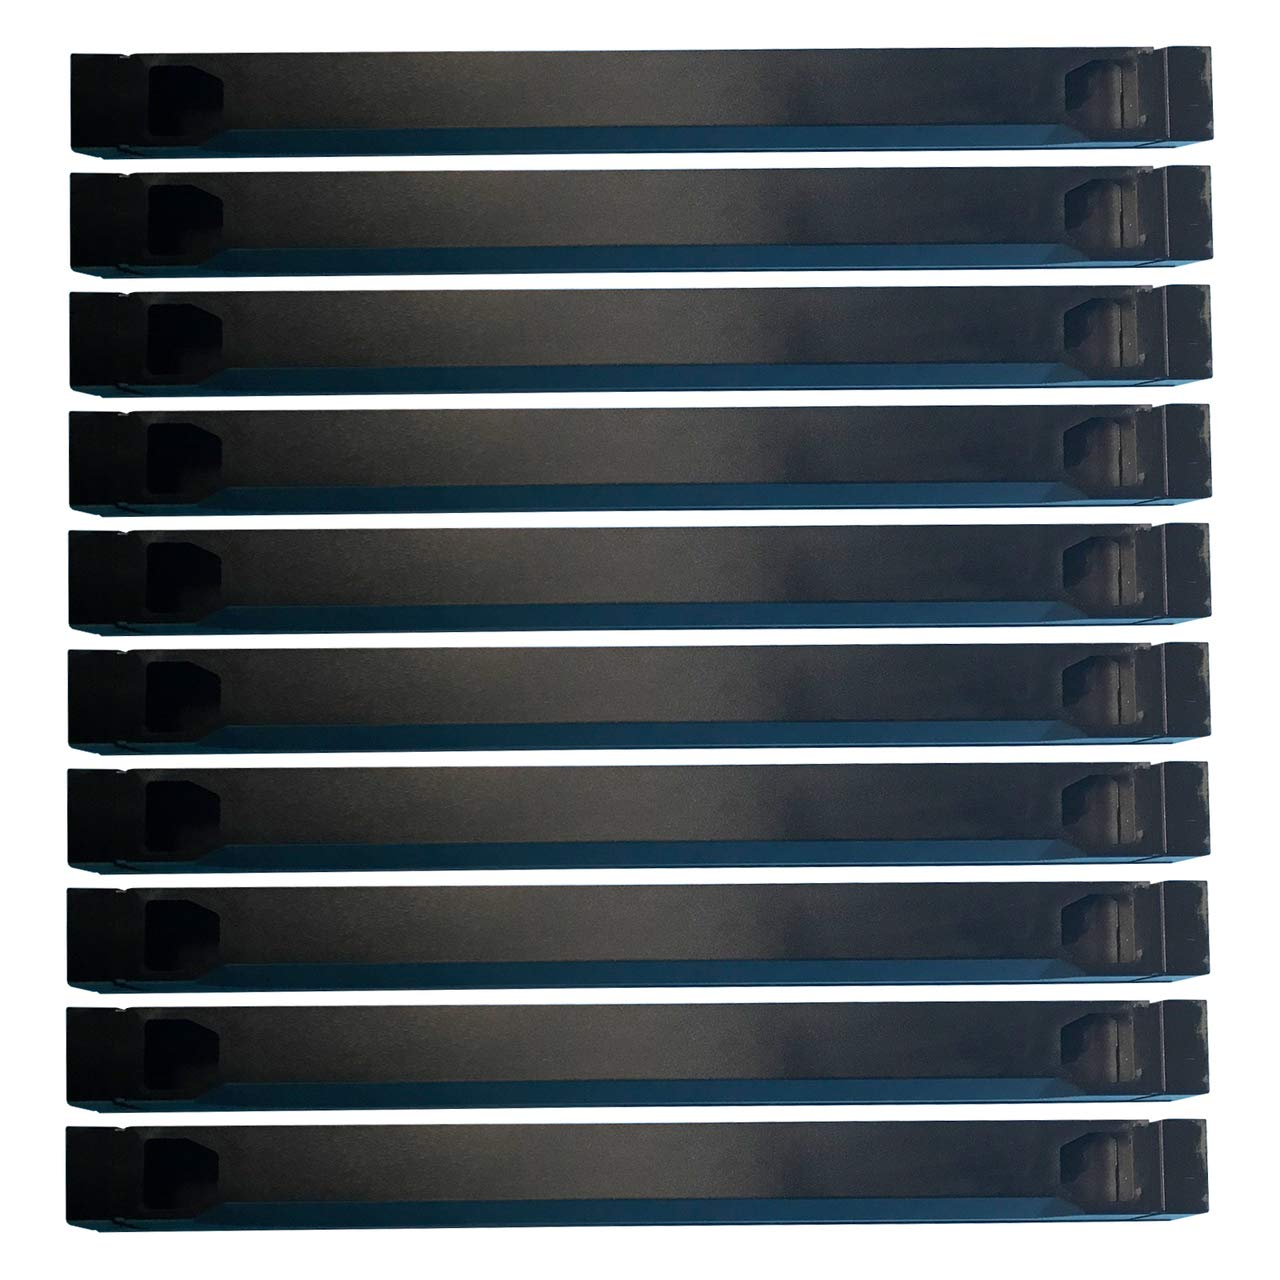 Hpe Rack Filler Panel Components Other BW928A Carbonite, Black by Hpe